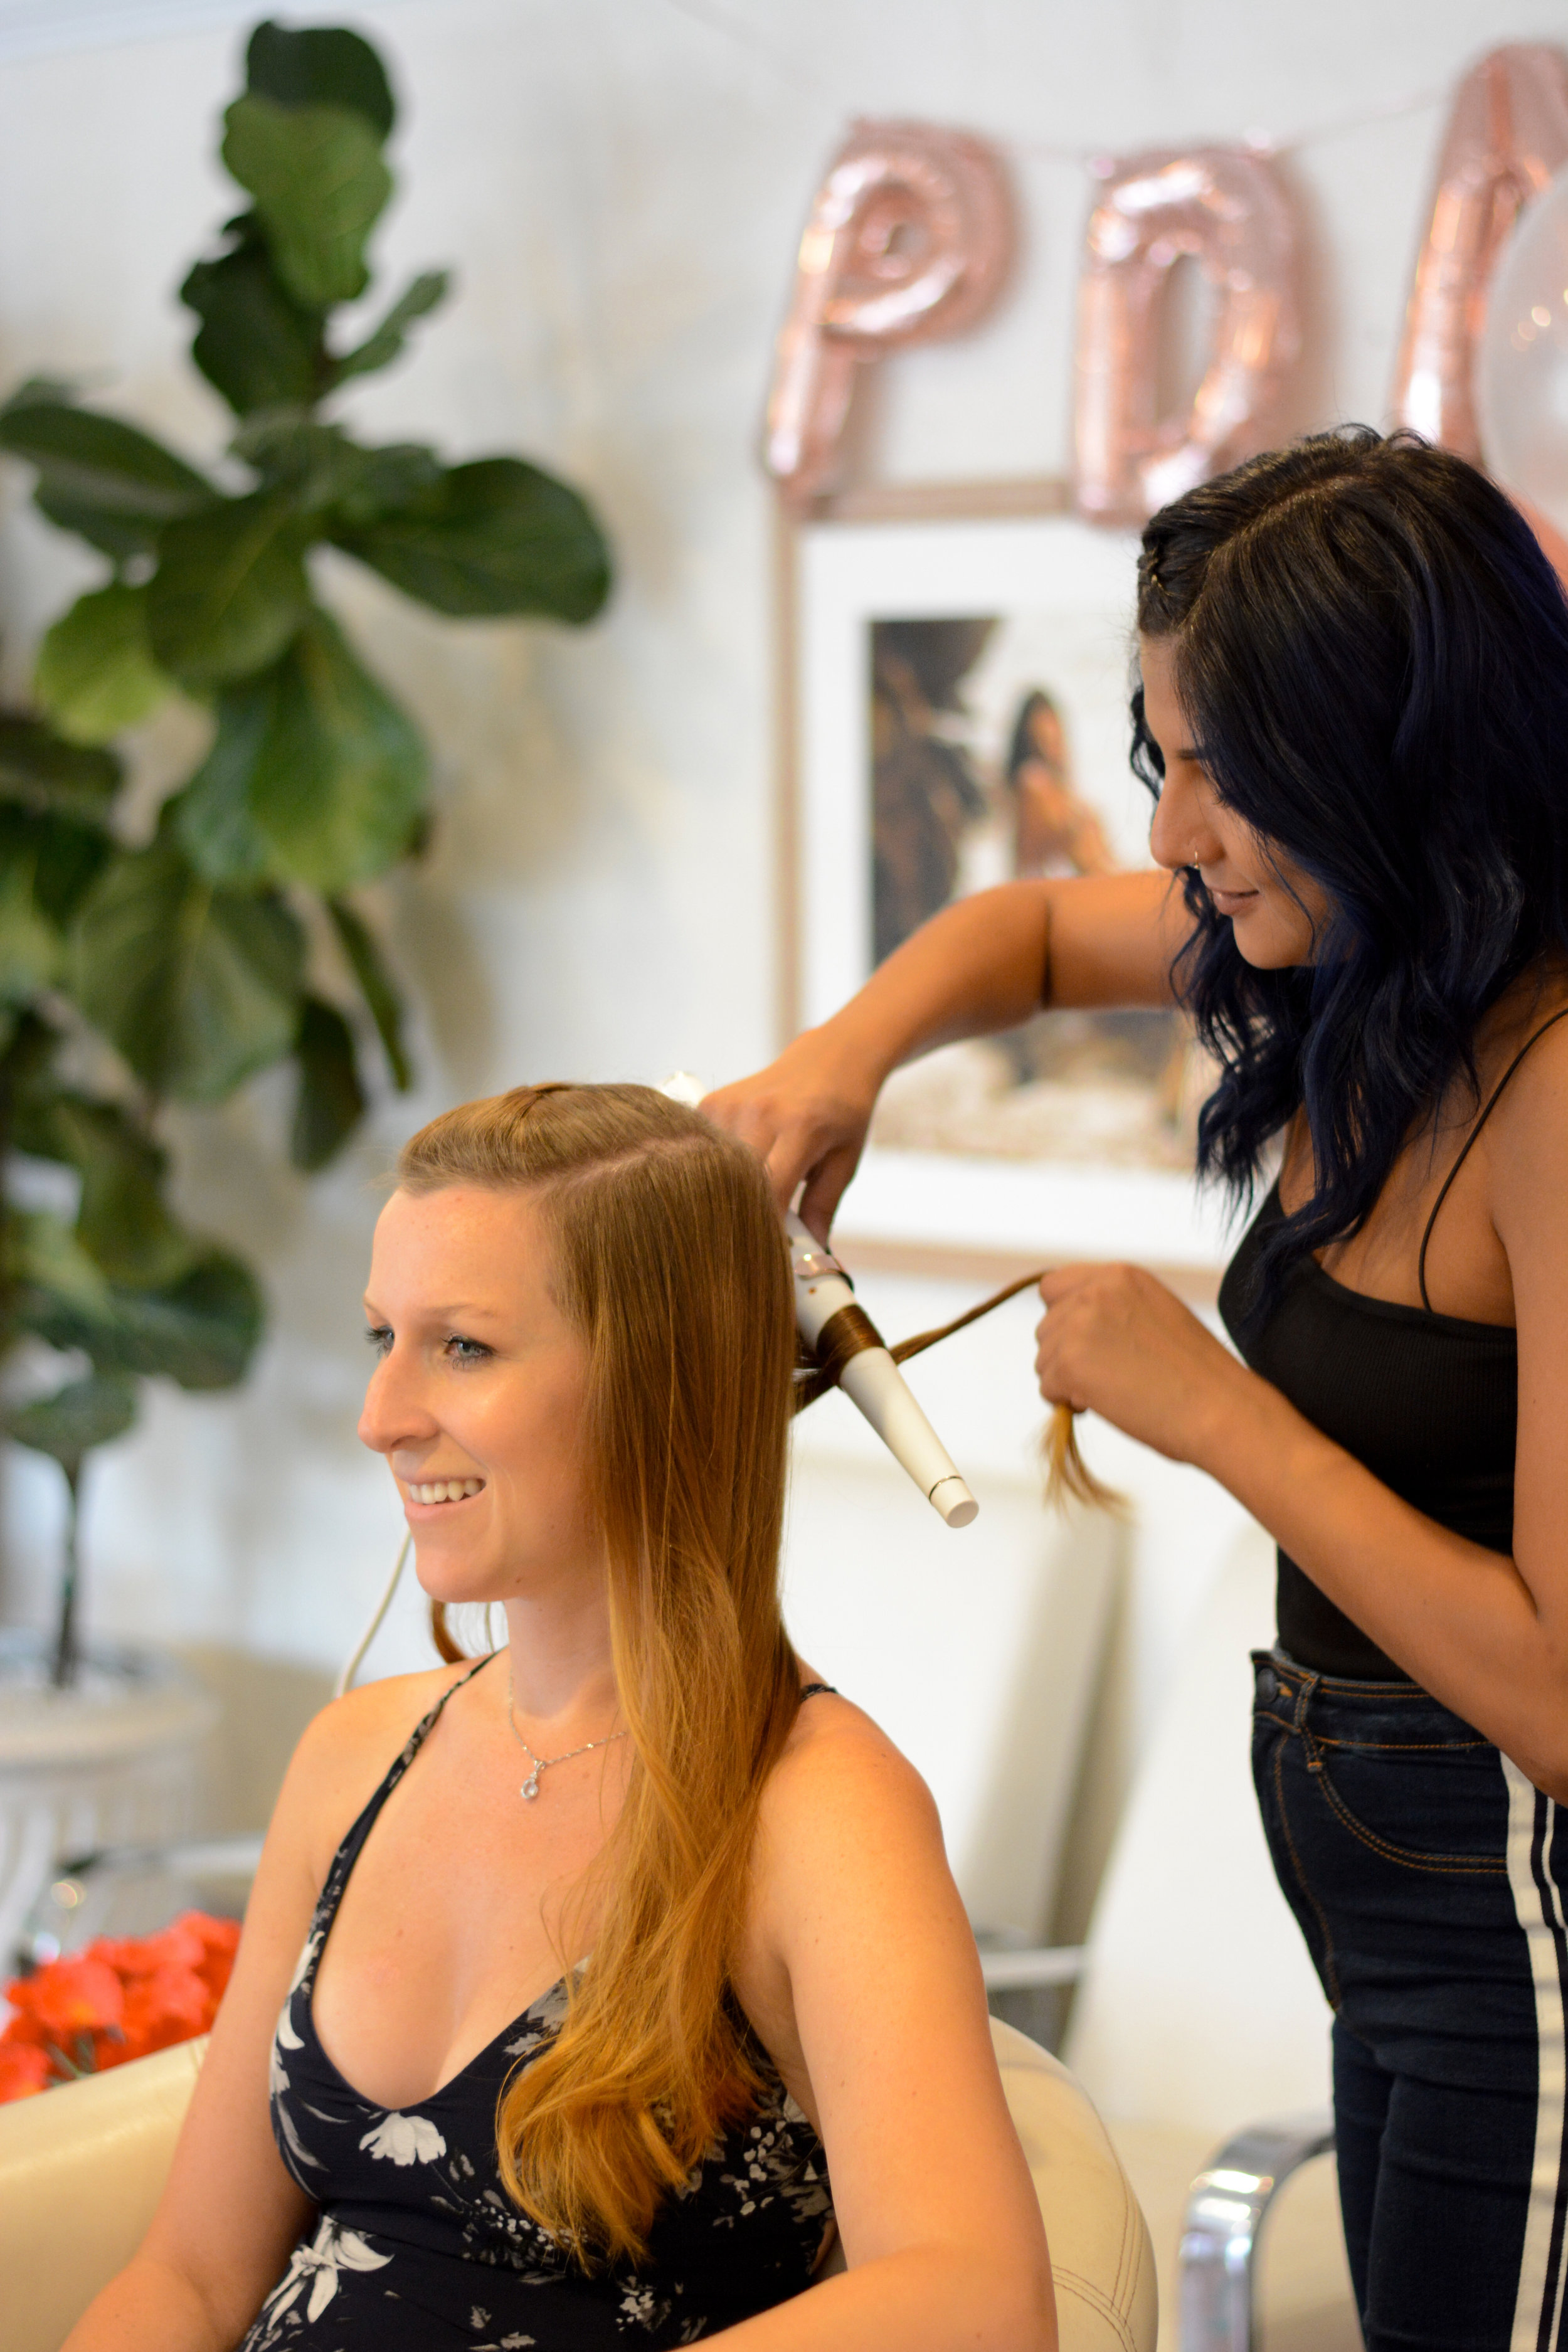 Our old and new friends made their way out to Malibu for a beauty day at  Glamifornia , where they got their hair styled at the braid bar with  Liz  and got makeup touch-ups by  Domenica !